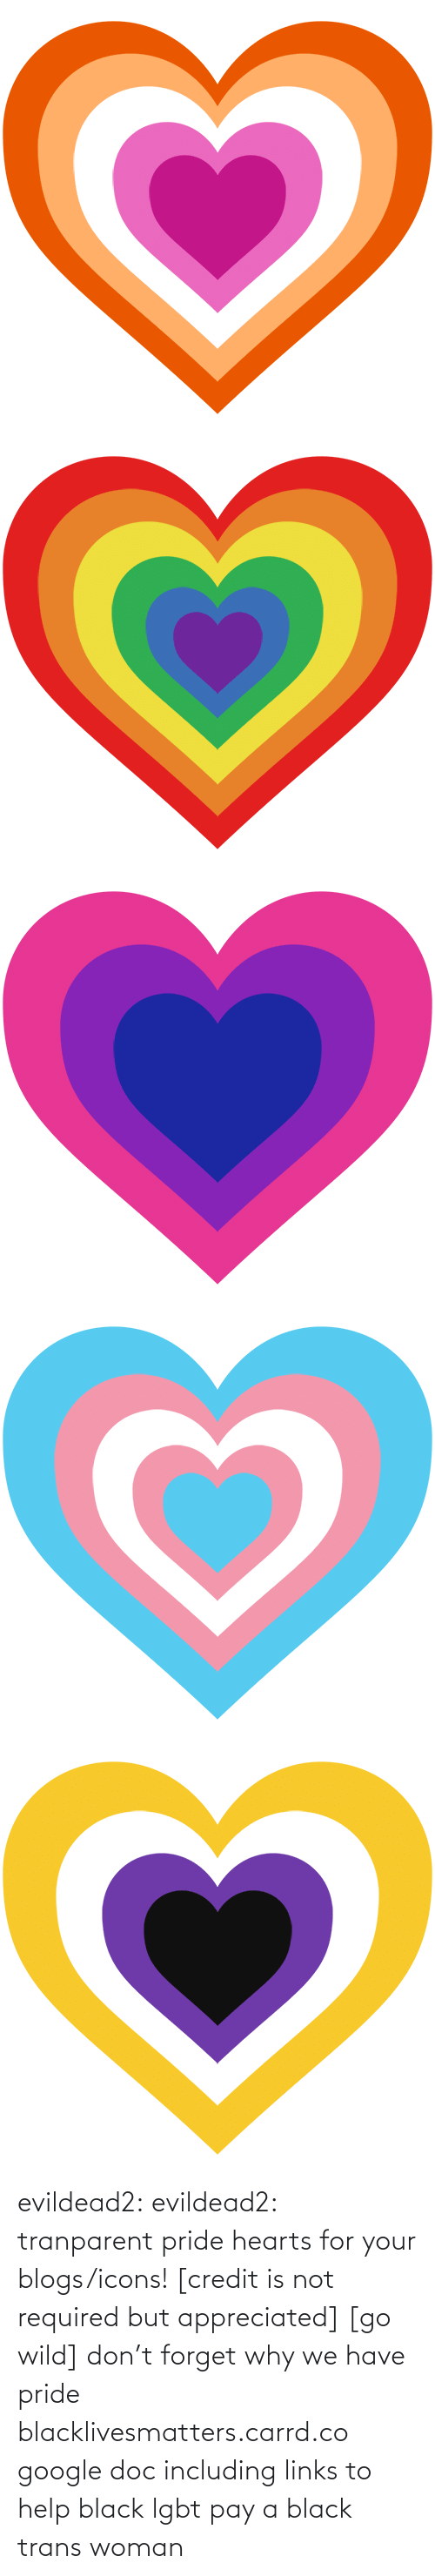 Wild: evildead2:  evildead2:  tranparent pride hearts for your blogs/icons! [credit is not required but appreciated] [go wild]      don't forget why we have pride  blacklivesmatters.carrd.co  google doc including links to help black lgbt pay a black trans woman